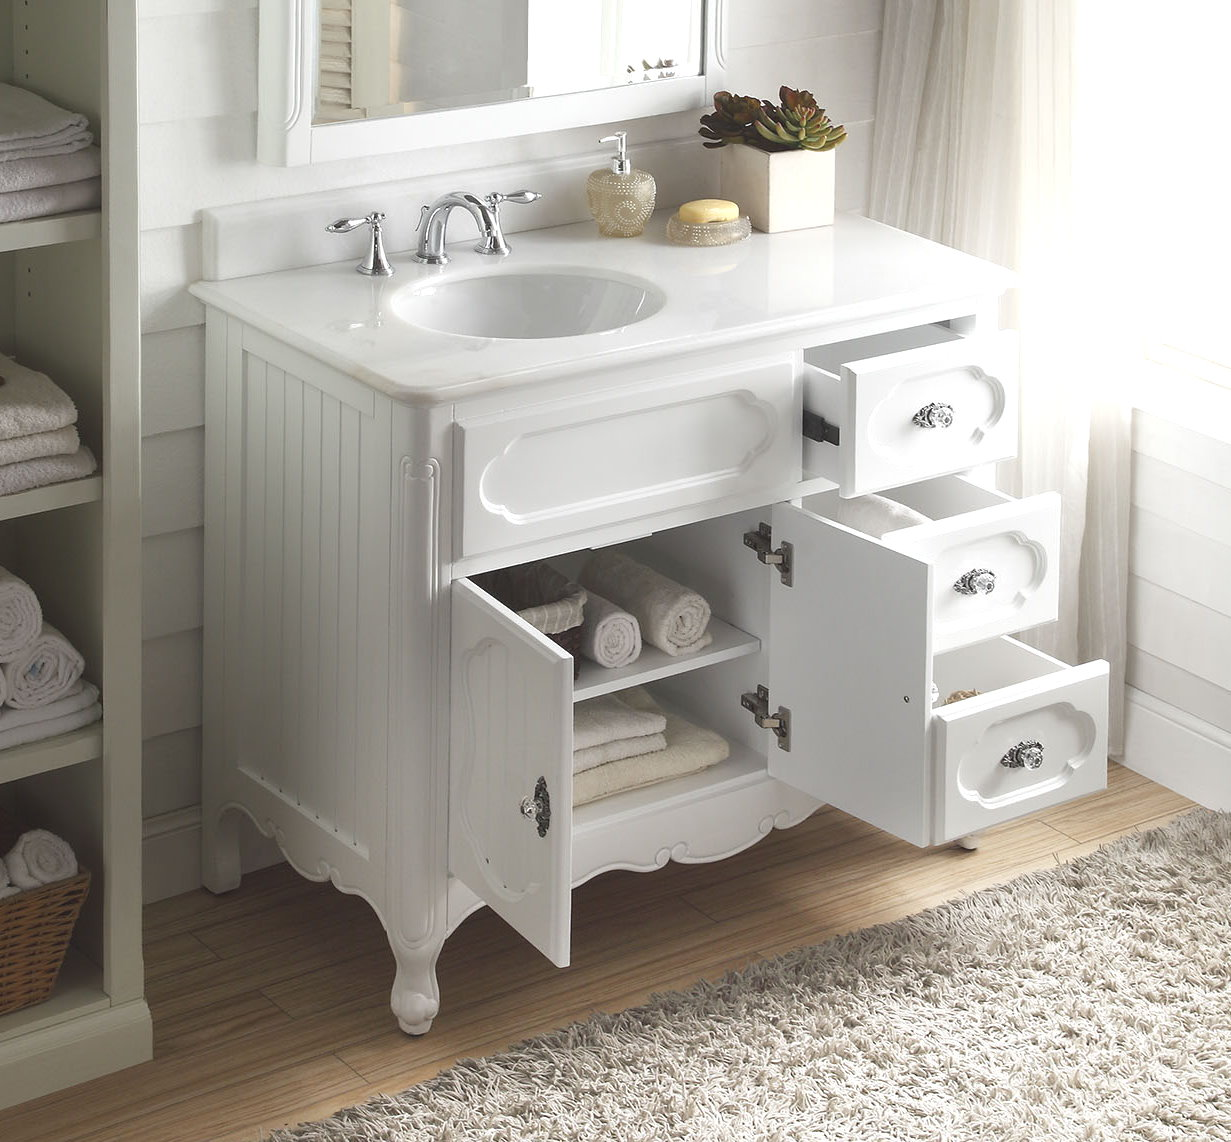 Fairmont Designs Bathroom Vanities Bathroom Vanity 30 X 21 Bathroom Design Ideas